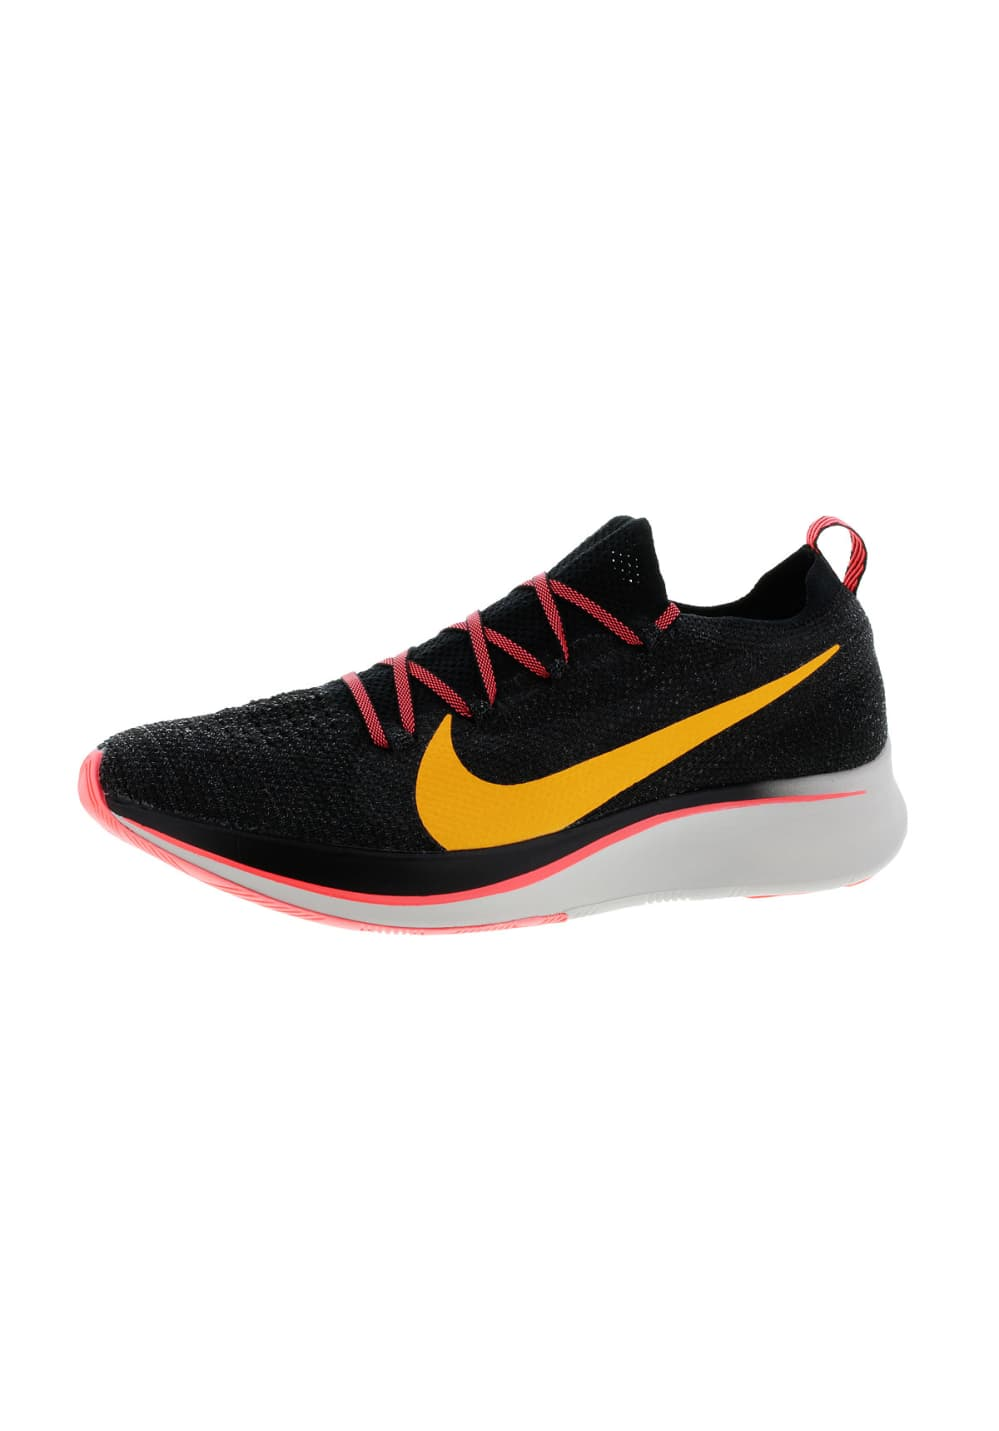 Zoom Flyknit Homme Nike Noir Pour Chaussures Fly 21run Running g6PSSqdx